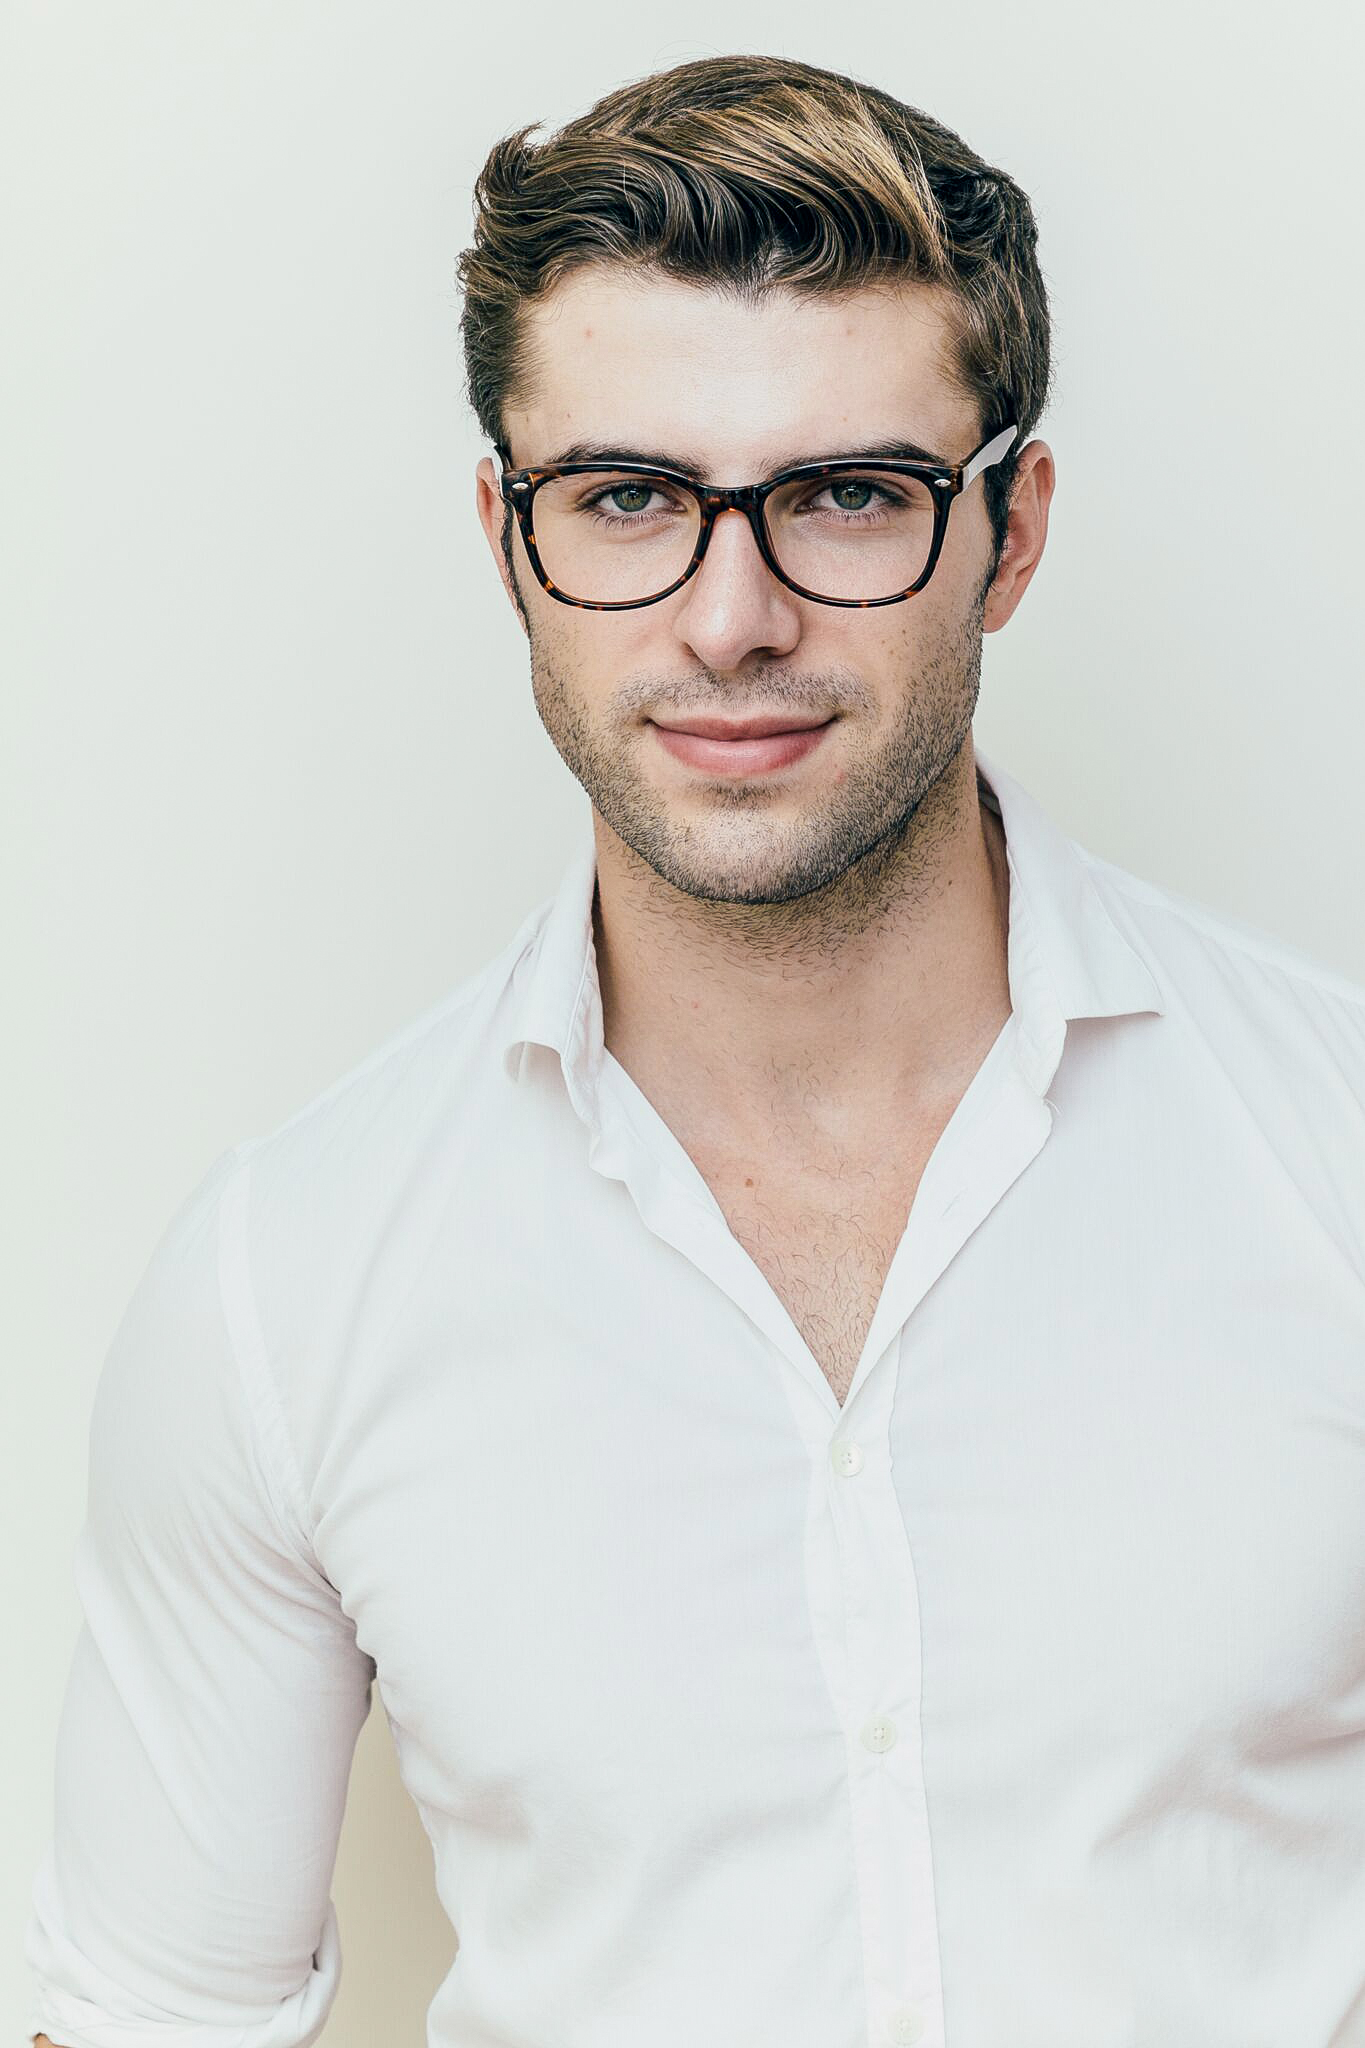 brunette man wearing plastic tortoise glasses